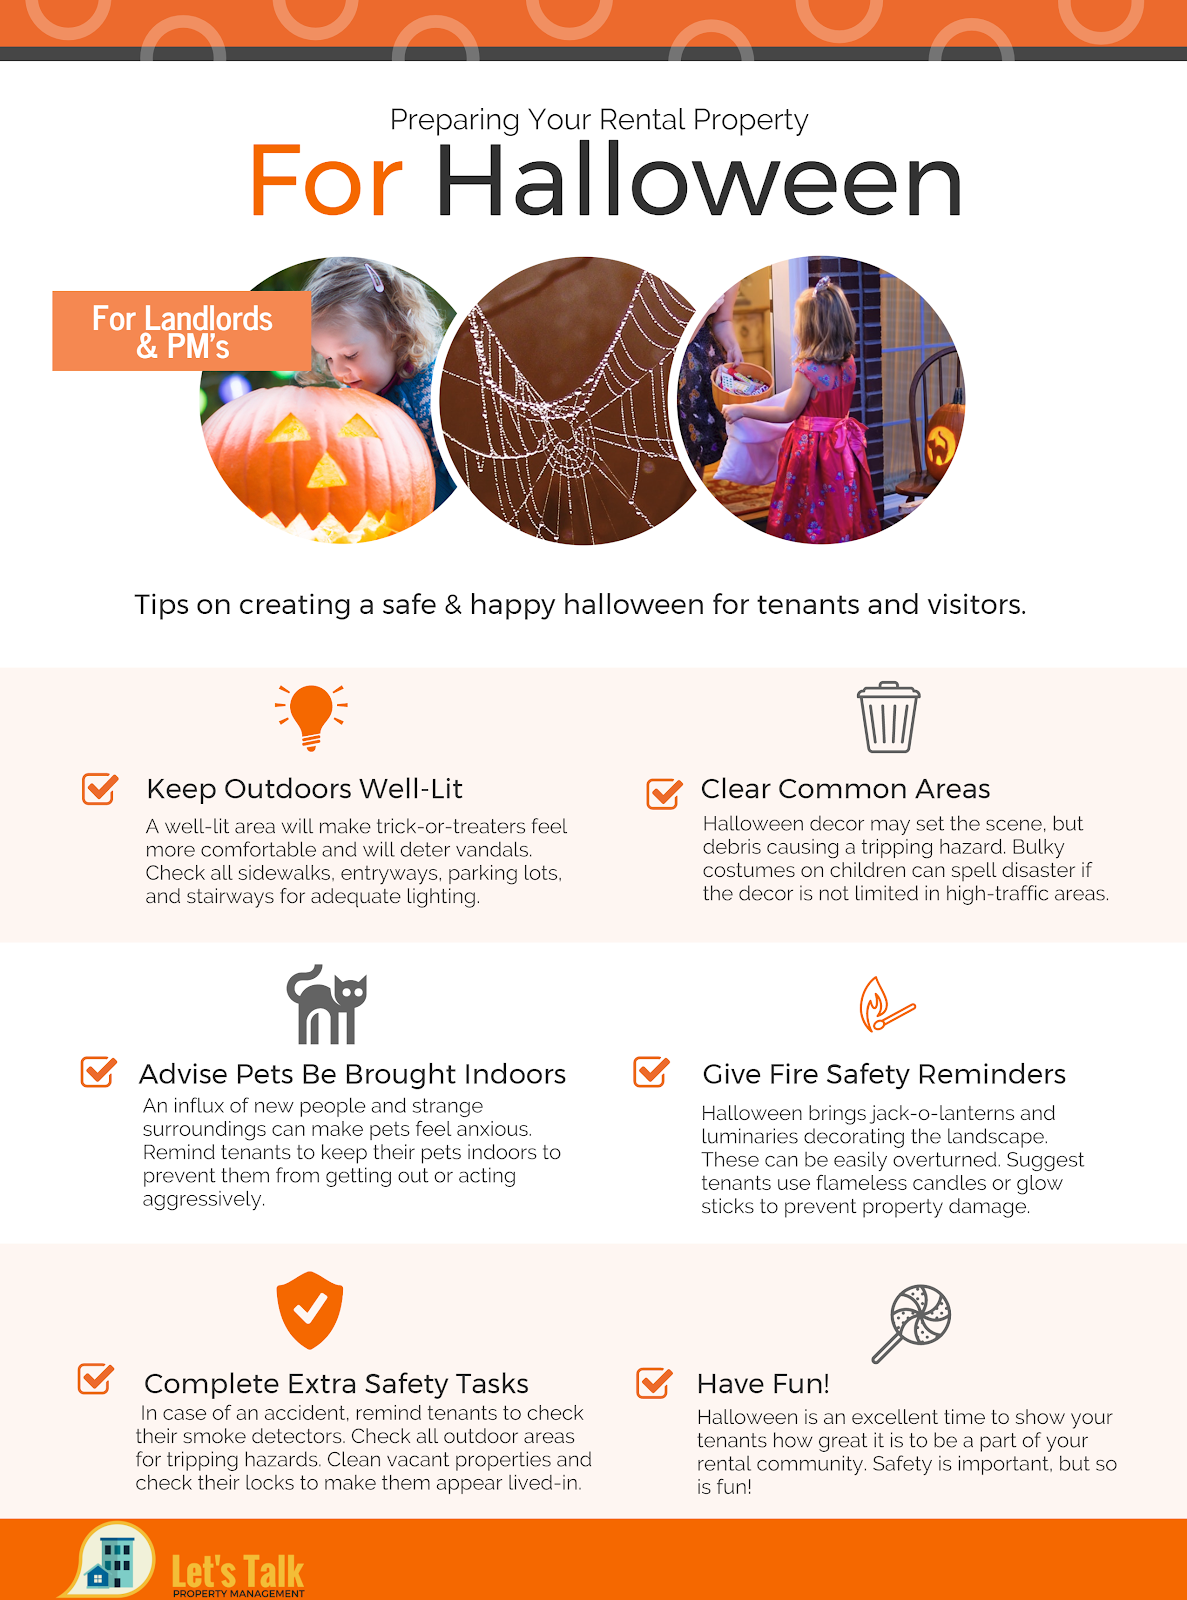 let's talk pm - halloween prep for your rental property - blog view